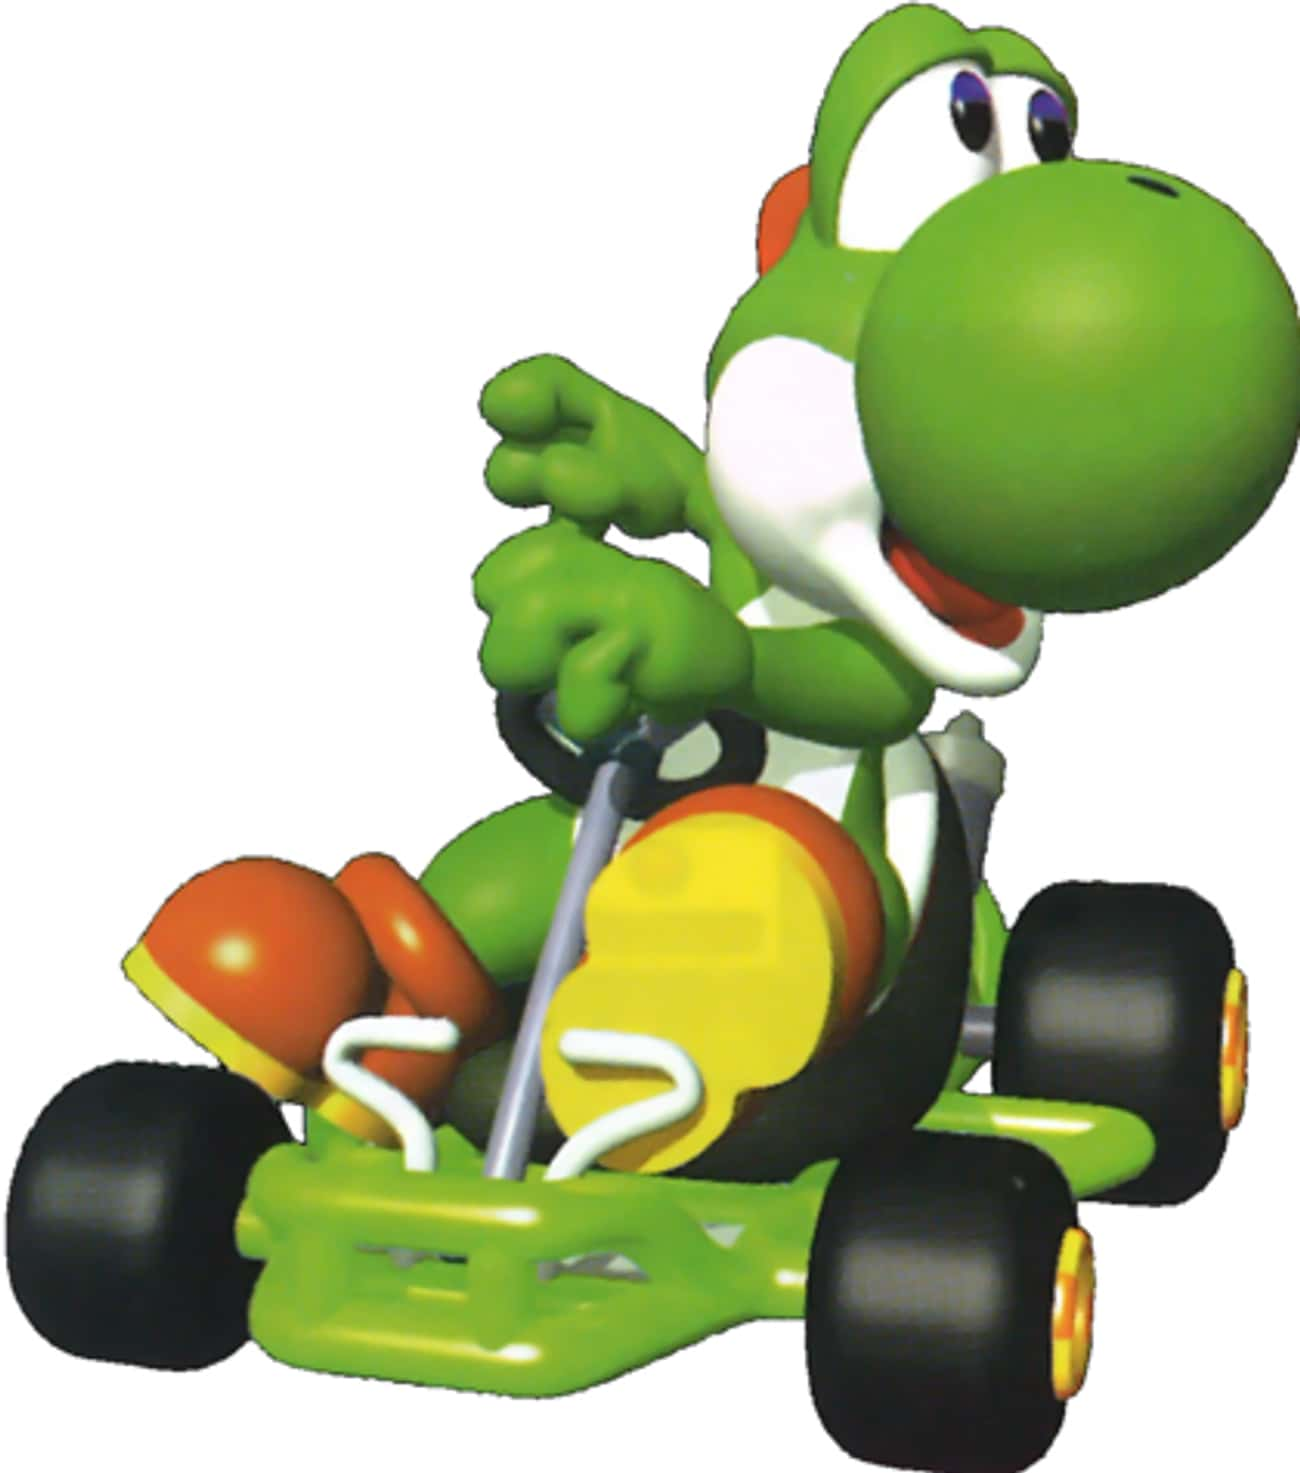 Yoshi: Hits Top Speed the Fast is listed (or ranked) 4 on the list Special Things Every Mario Kart 64 Character Does Better Than The Others